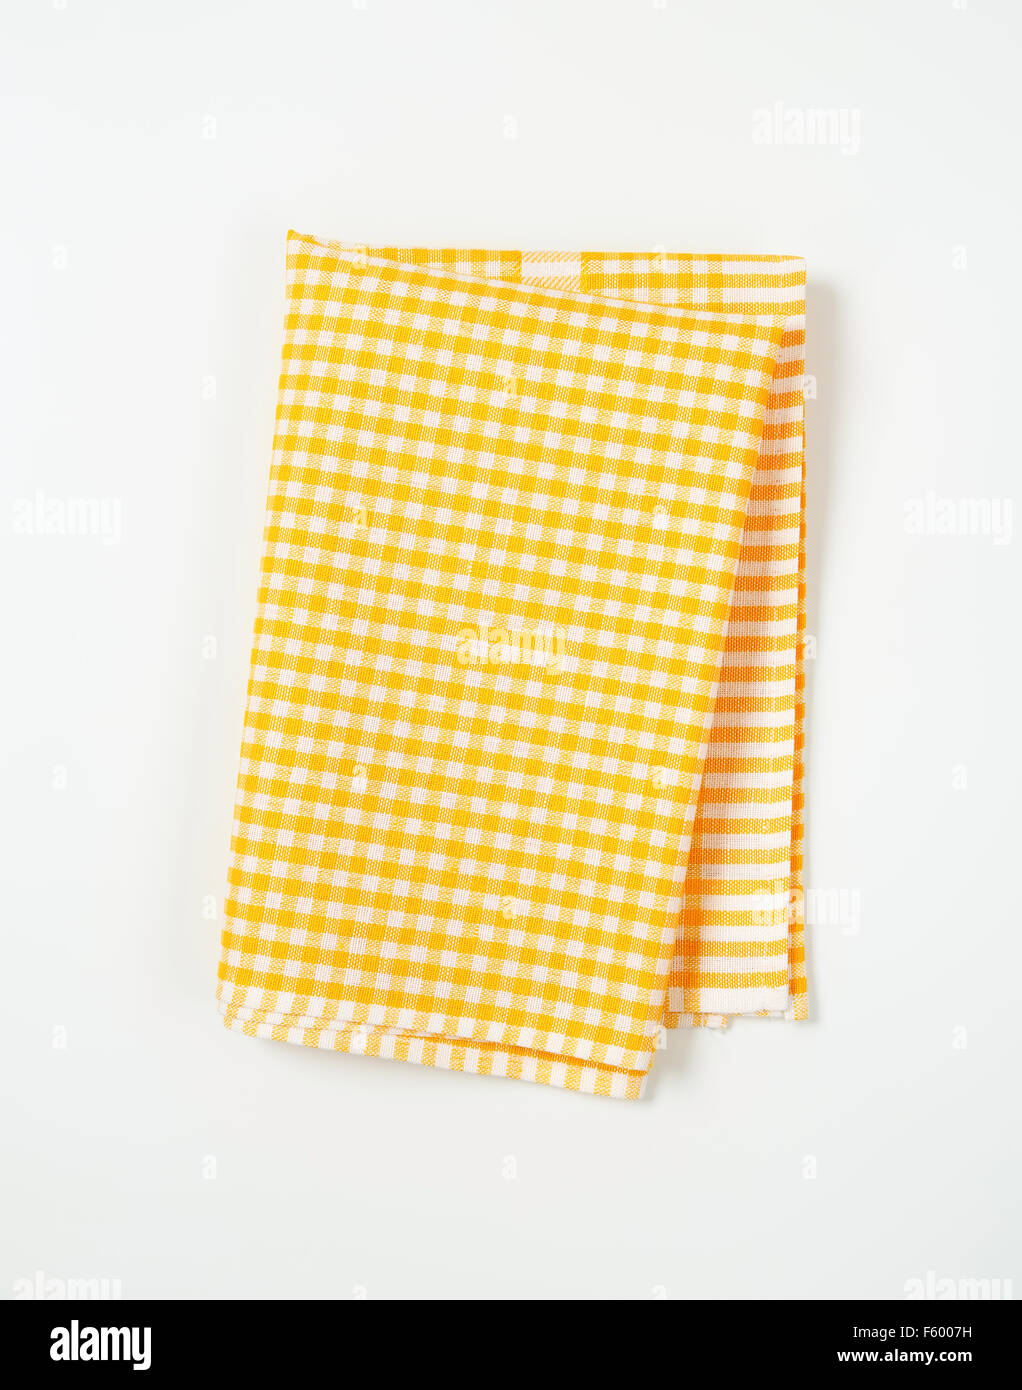 Beau Yellow And White Checkered Tablecloth On White Background